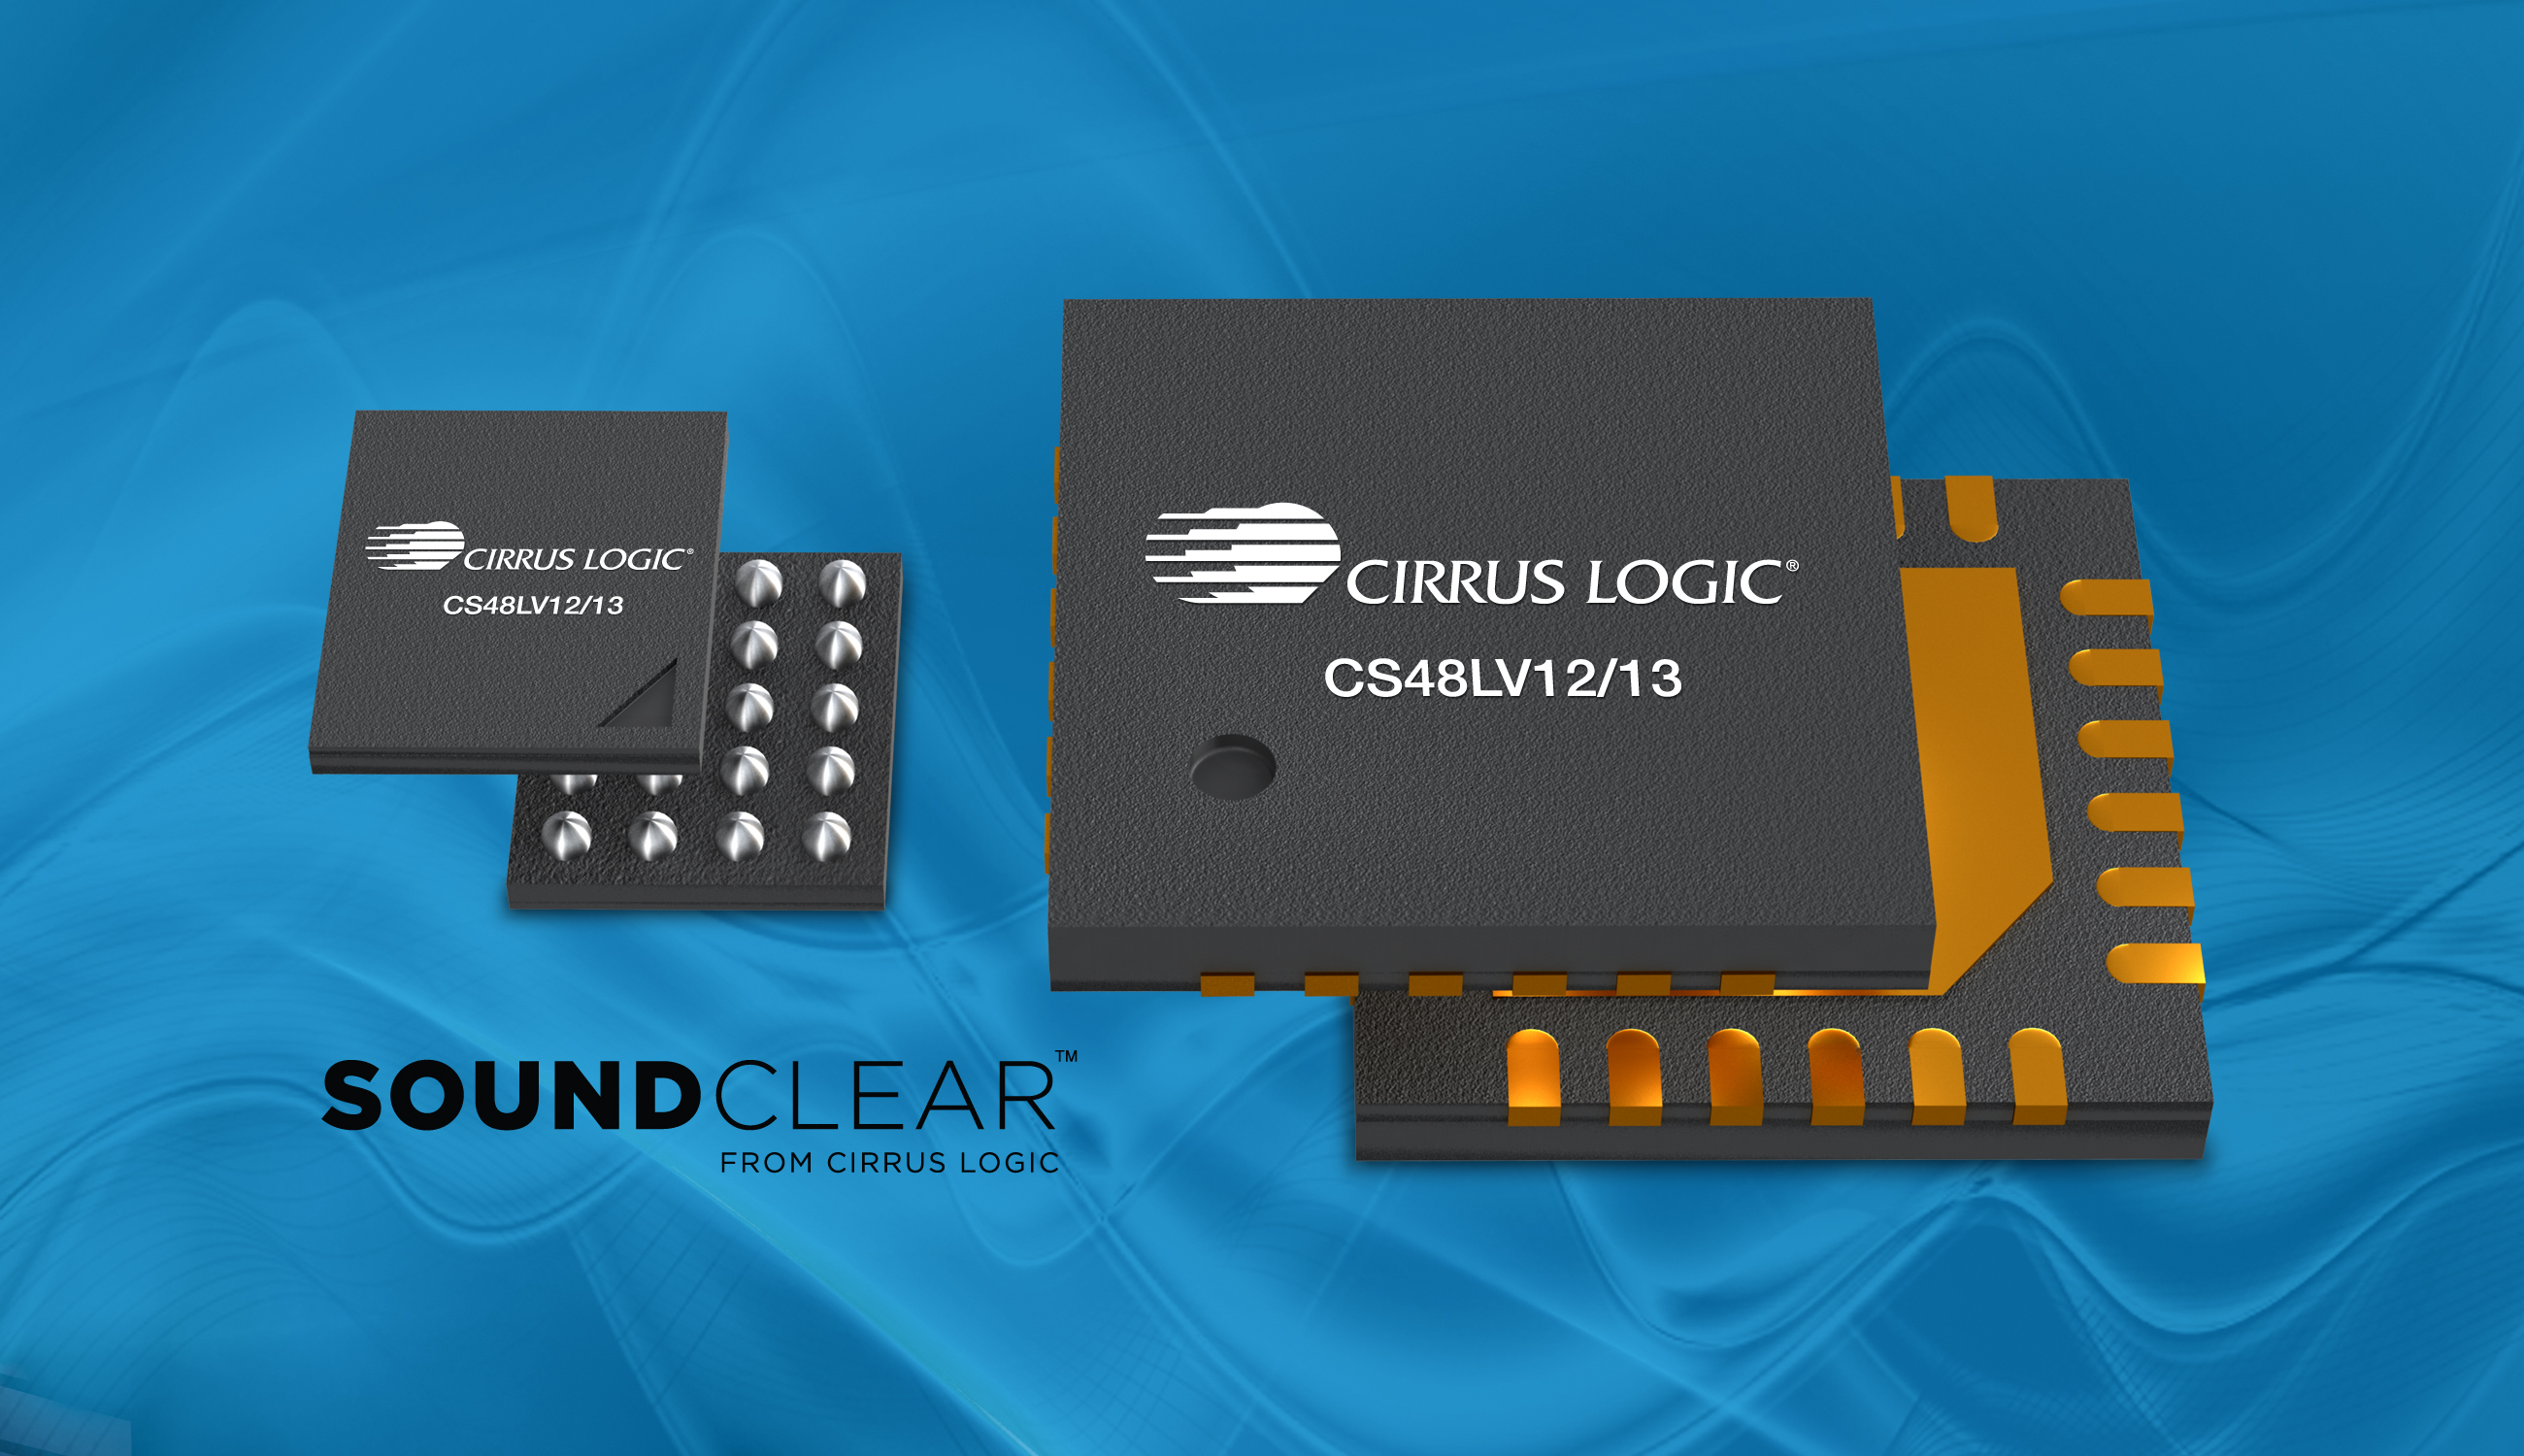 Cirrus Logic's new CS48LV12/13 voice processors with SoundClear(TM) technology. (Photo: Business Wire)